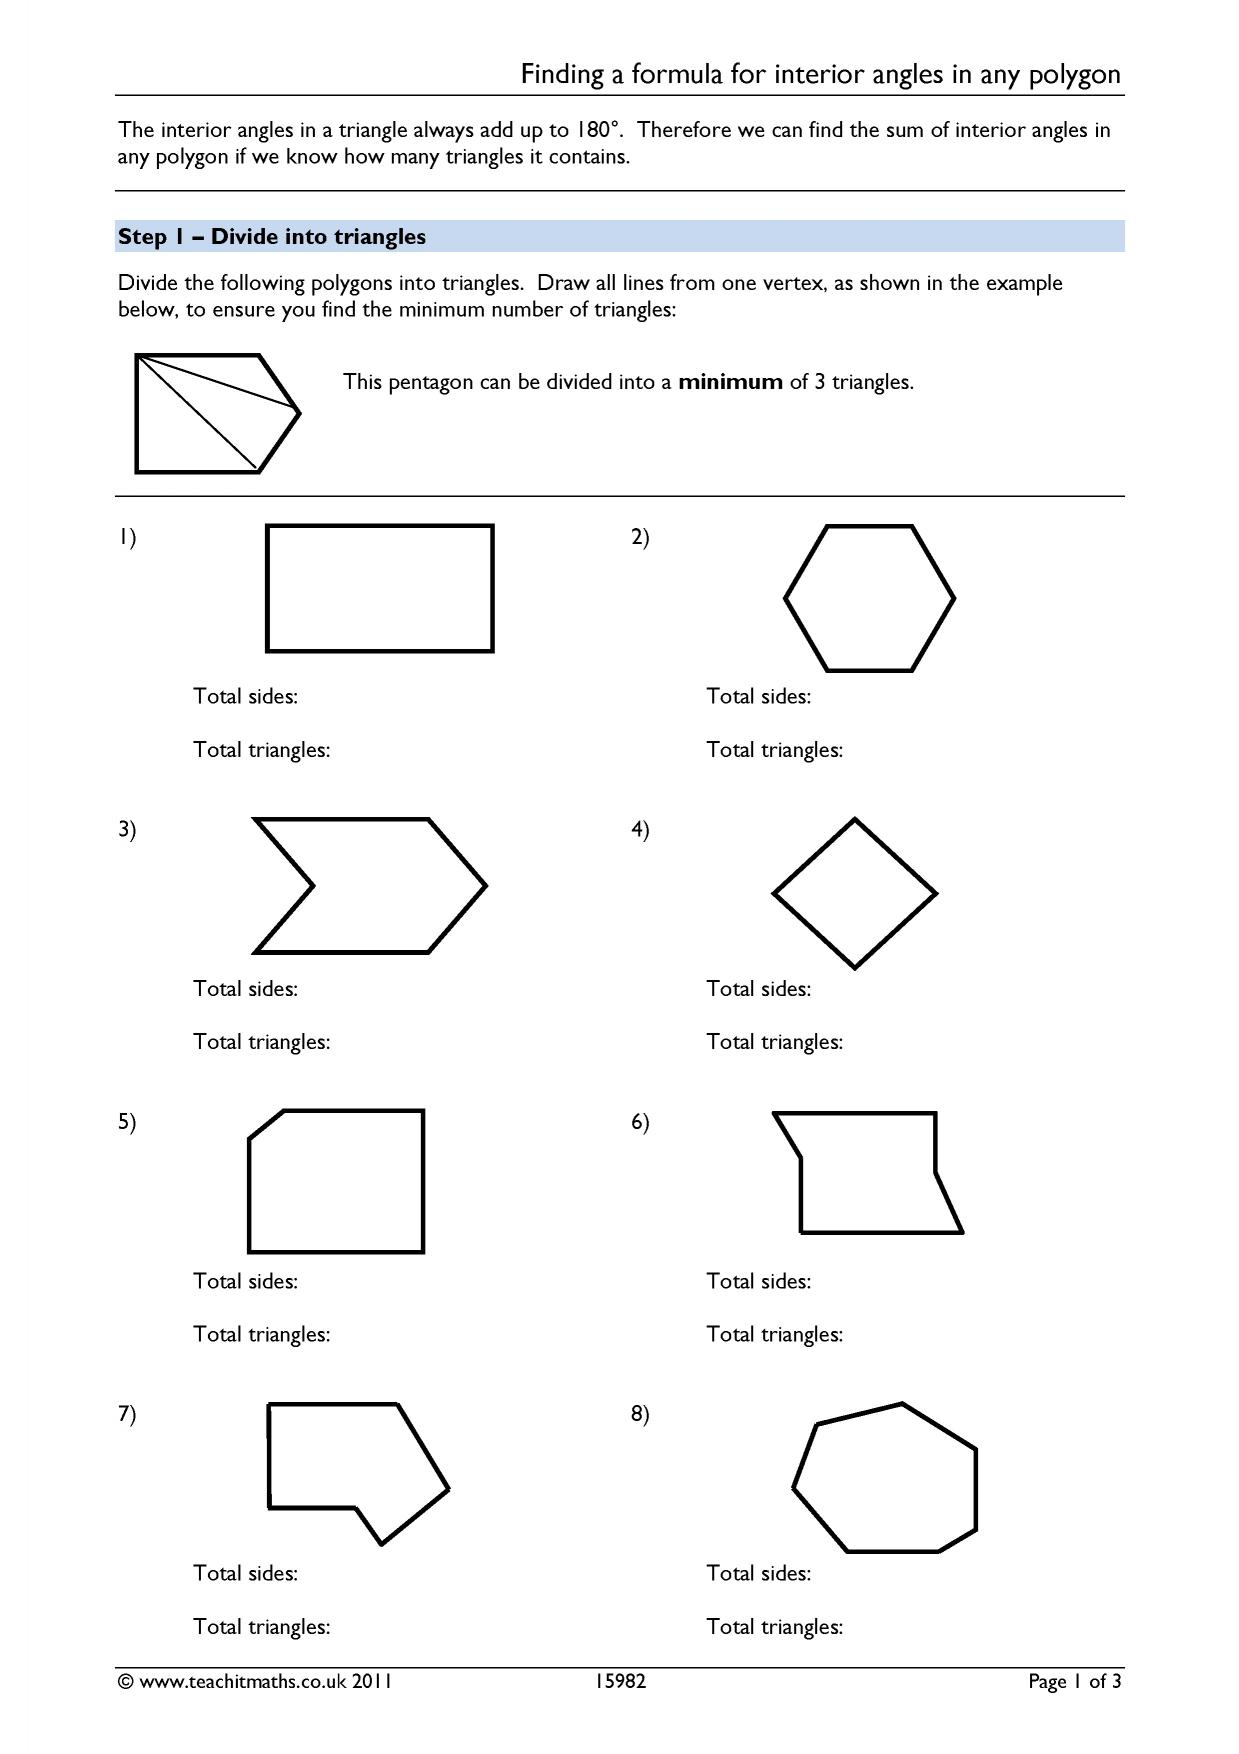 Finding a formula for interior angles in any polygon